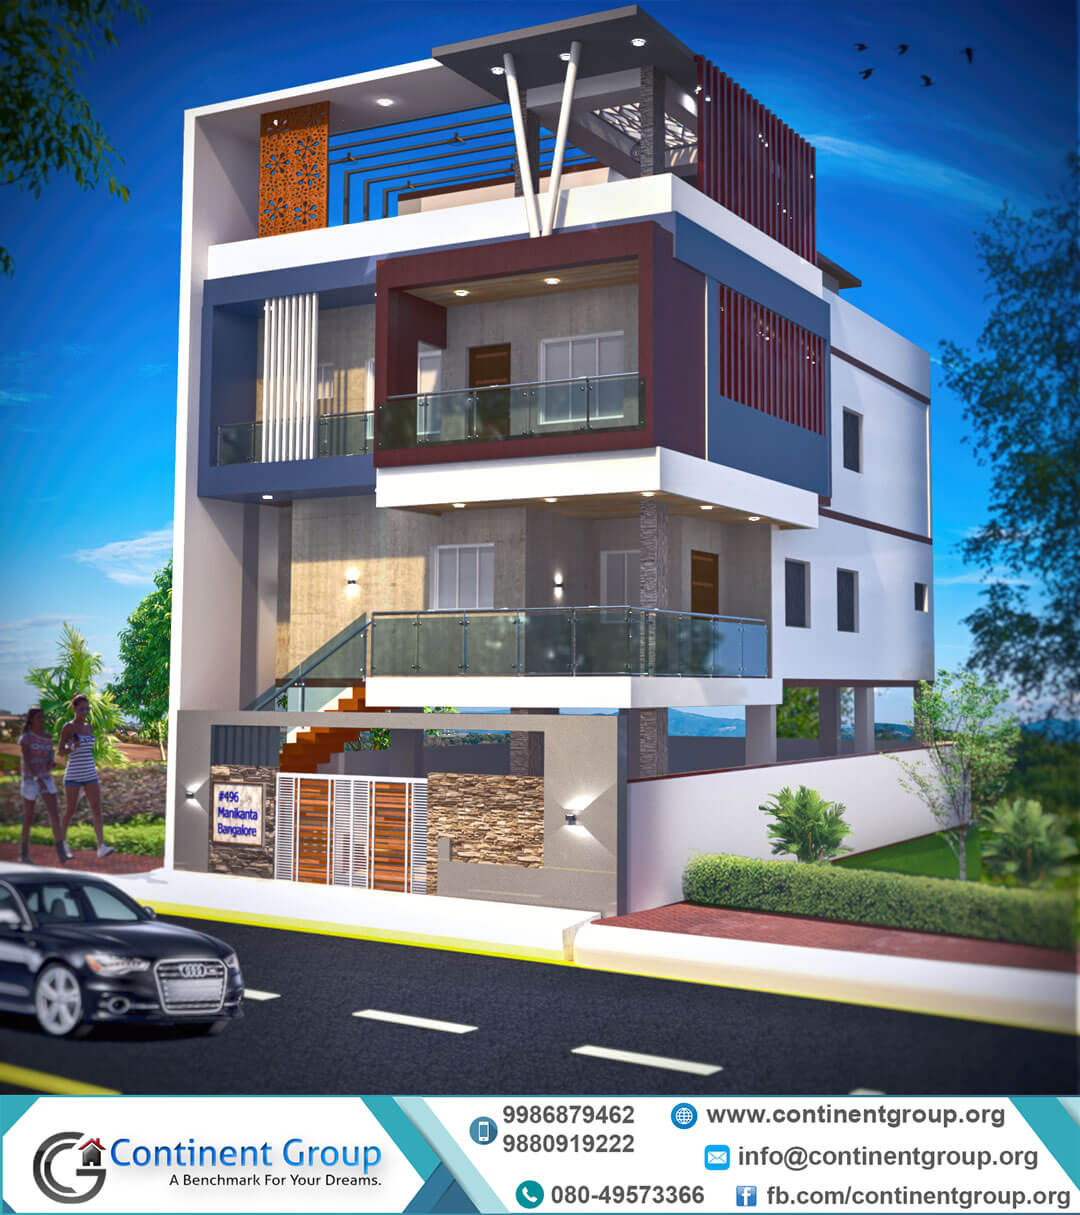 3d front elevation building design bangalore - 3d Design Building